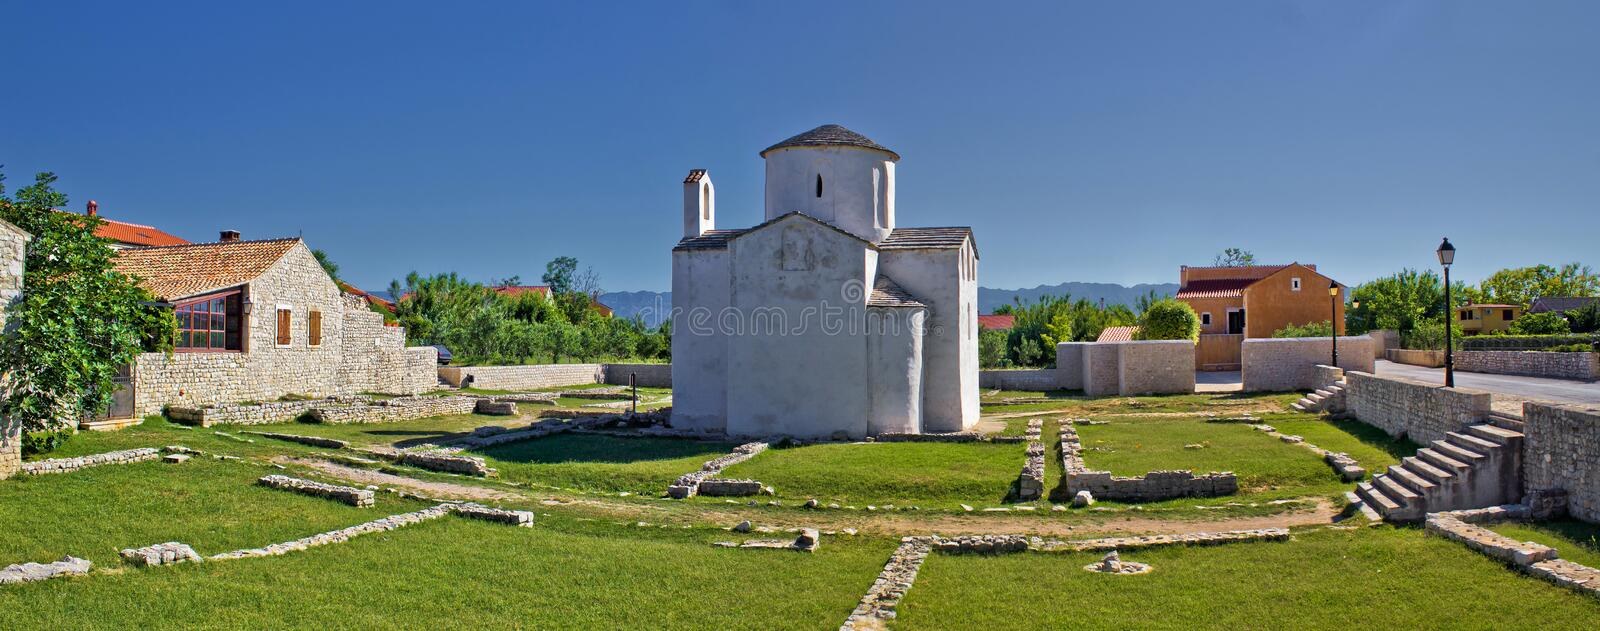 Download Historic Site - Town Of Nin Cathedral Stock Image - Image: 26638521